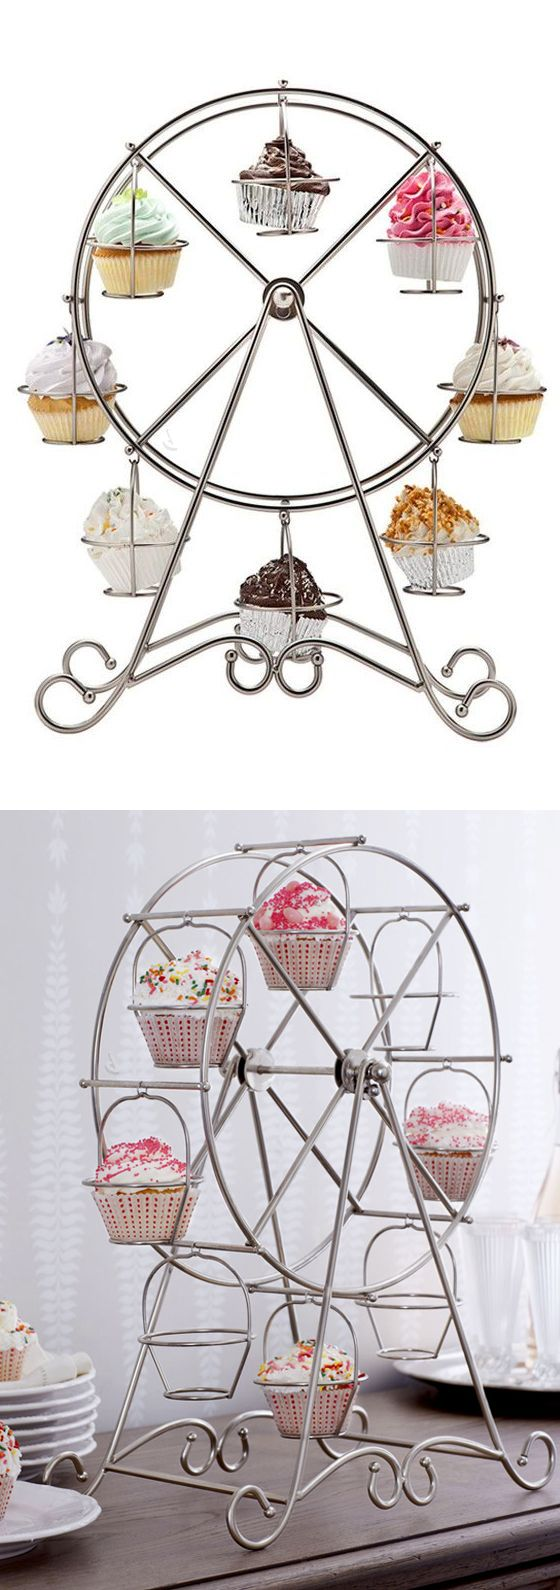 Ferris wheel cupcake holder! #product_design